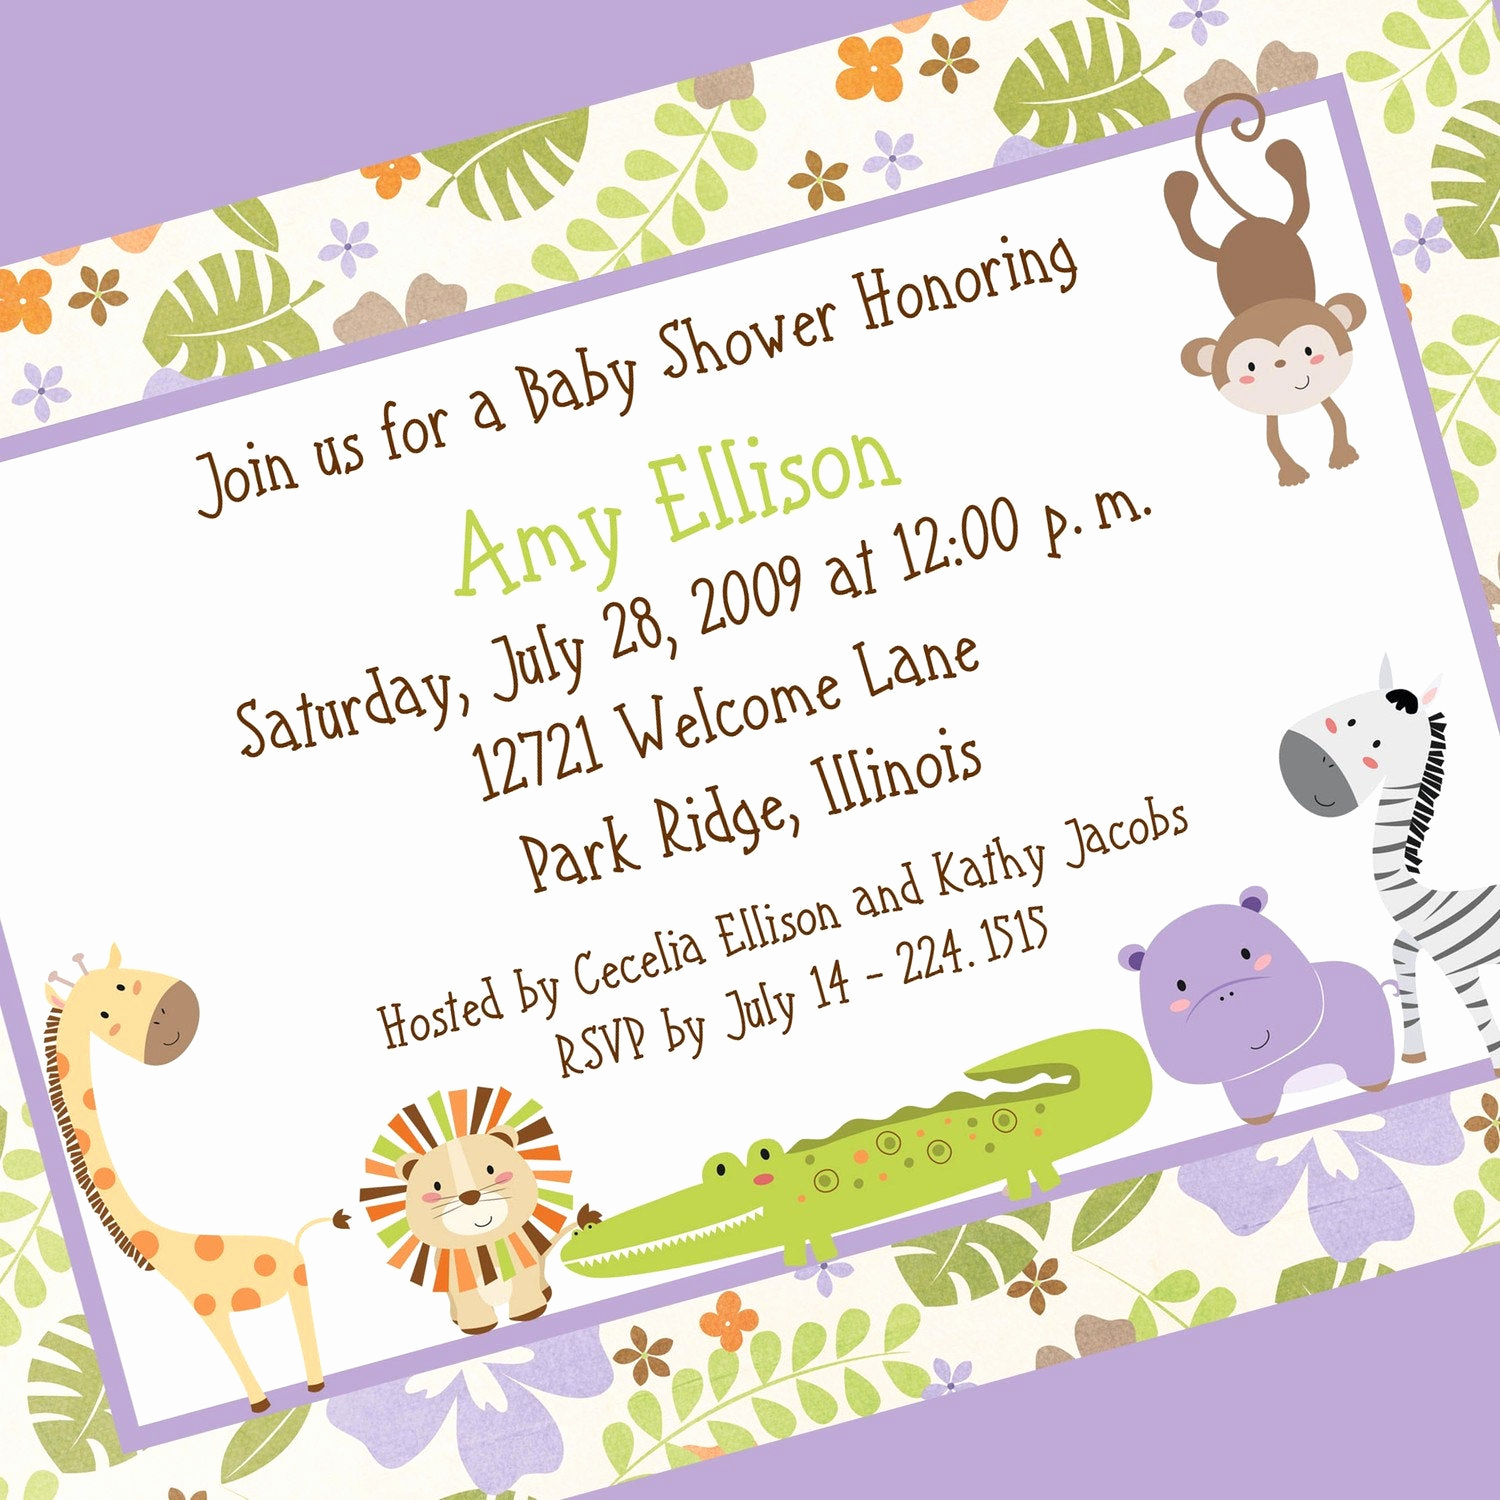 Baby Shower Invitation Pictures Fresh Floral Jungle Baby Shower Invitation Printable by